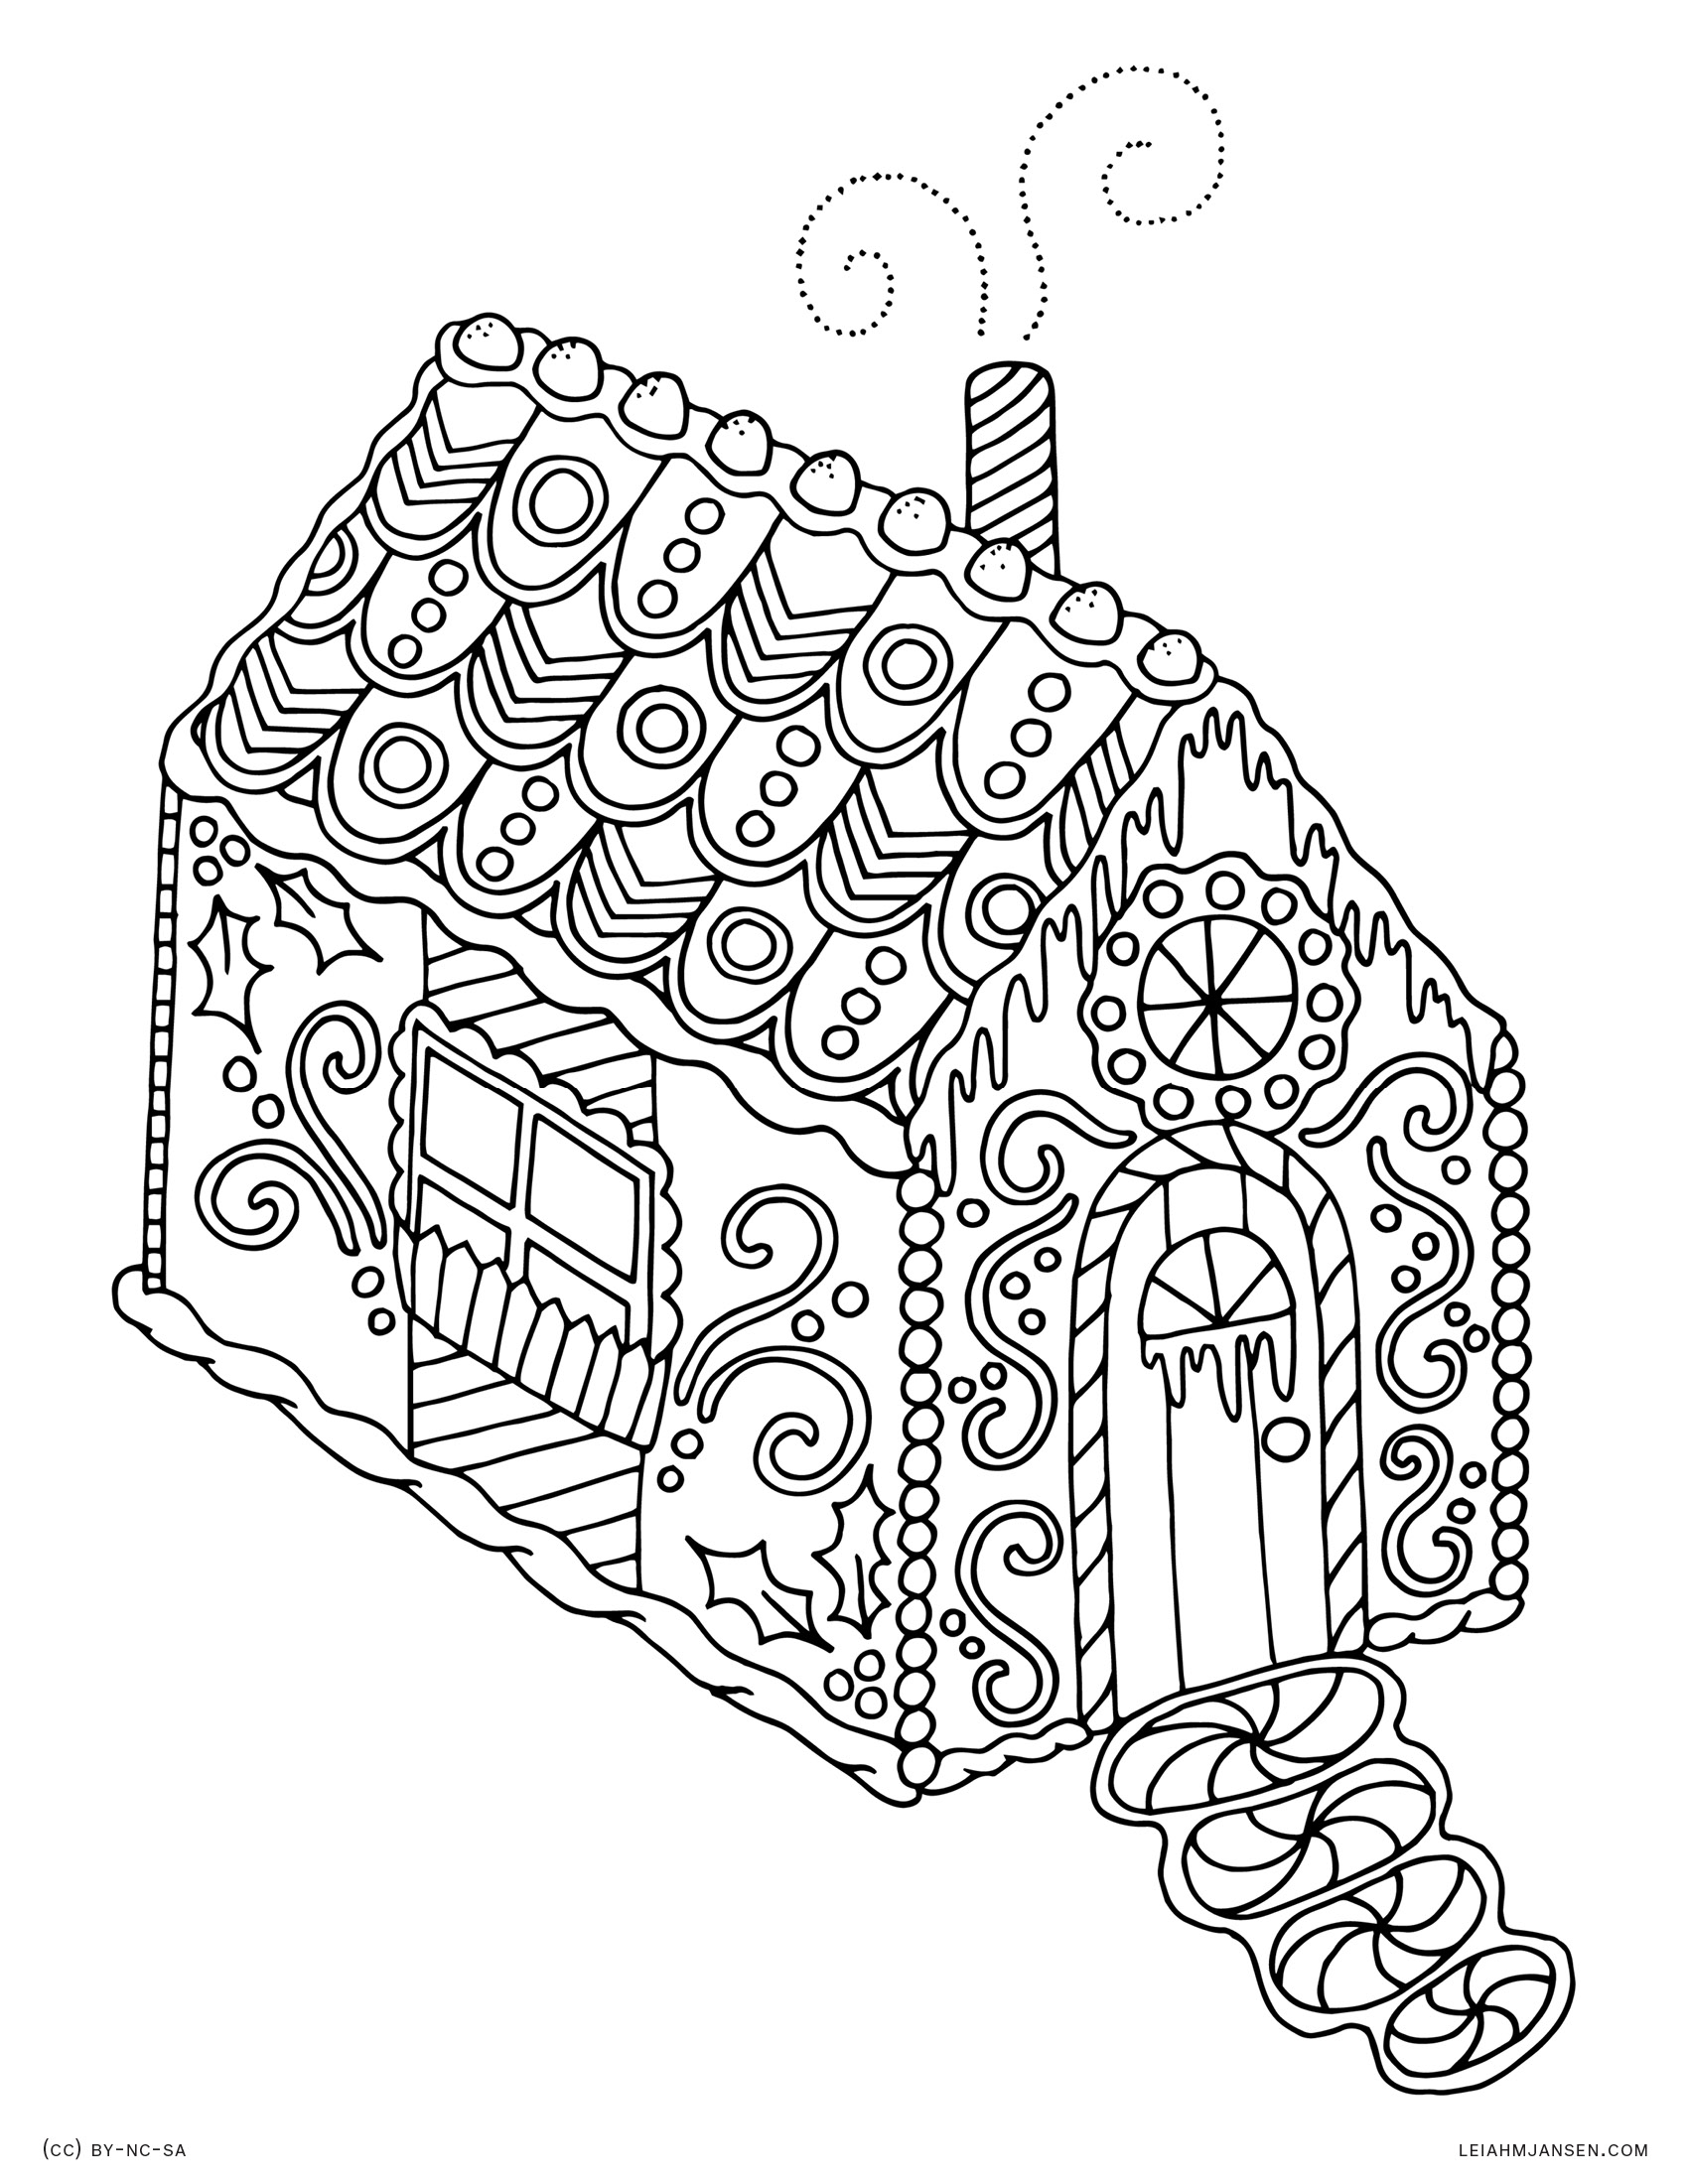 photo about Free Printable Holiday Coloring Pages named Vacation Coloring Internet pages